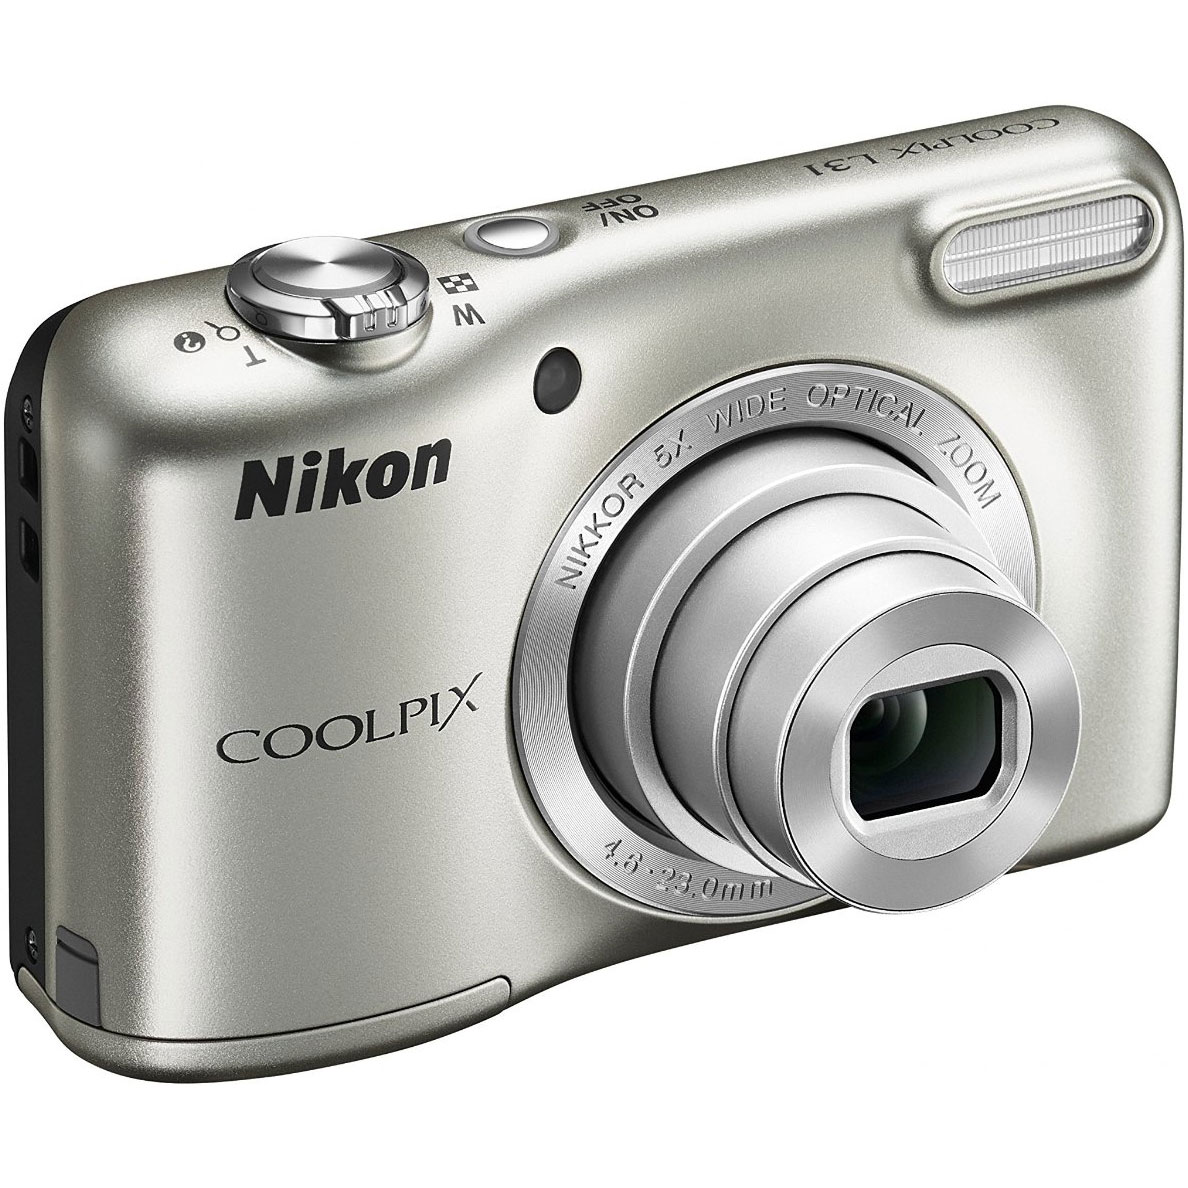 Nikon COOLPIX L31 16.1MP Compact Digital Camera 5x Optical Zoom and 2.7-inch